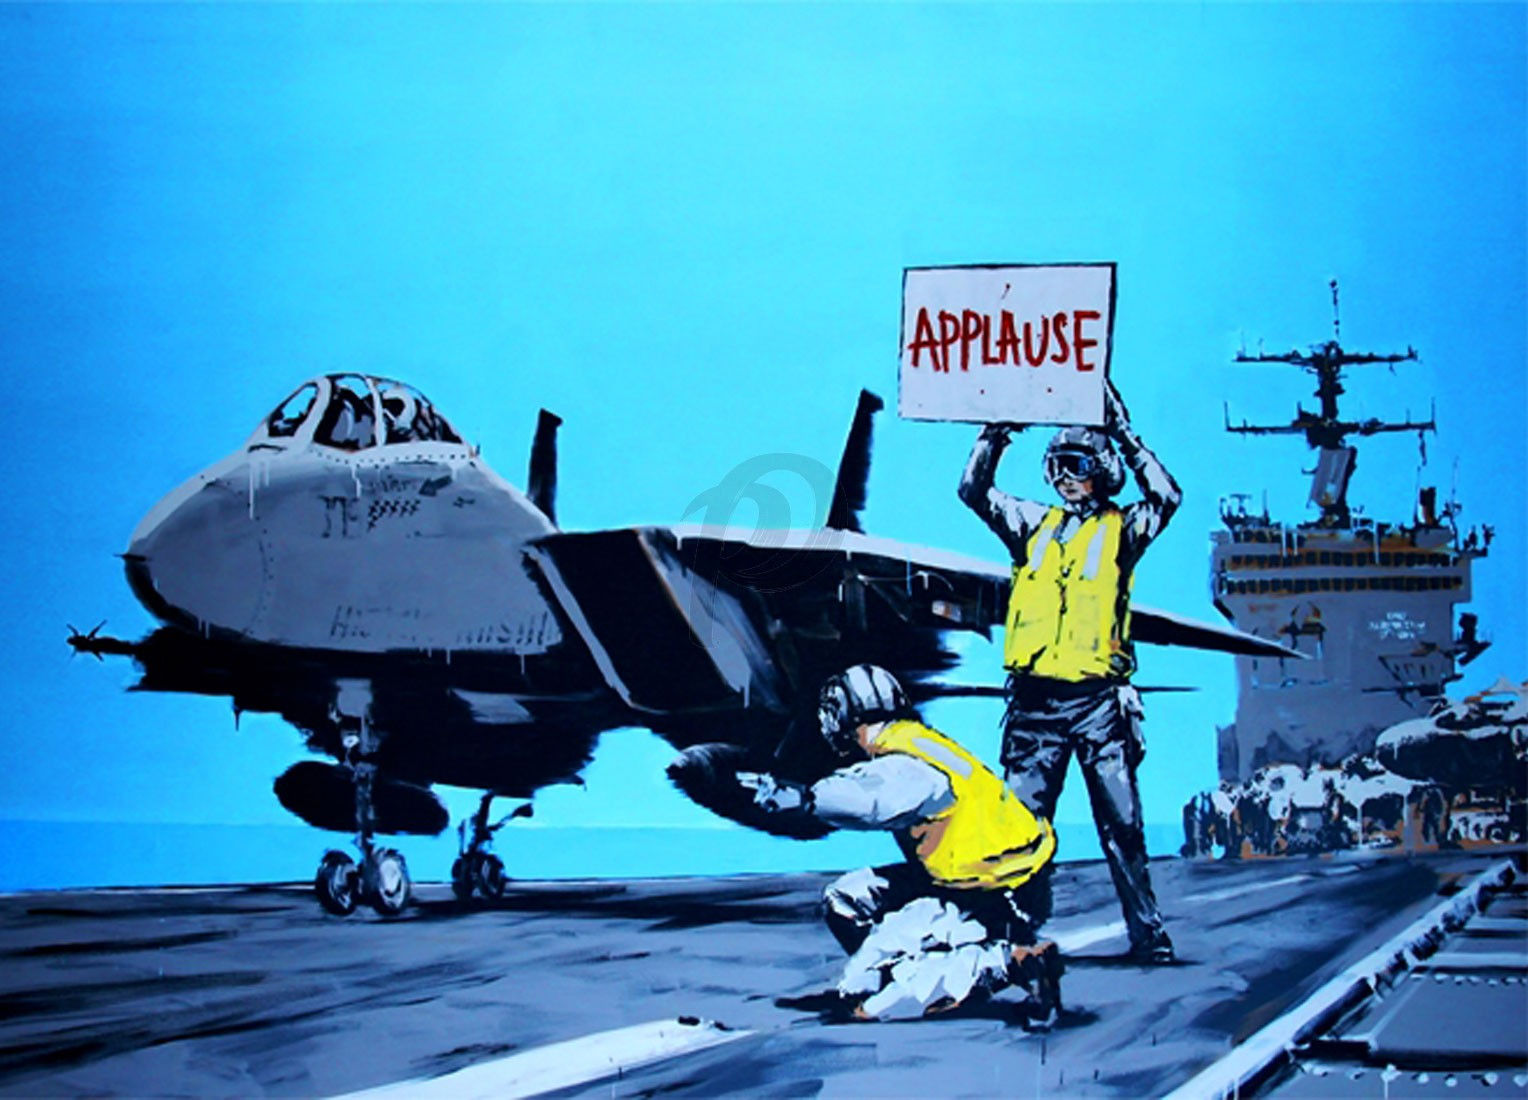 Banksy - Applause (Hand-Painted Reproduction)